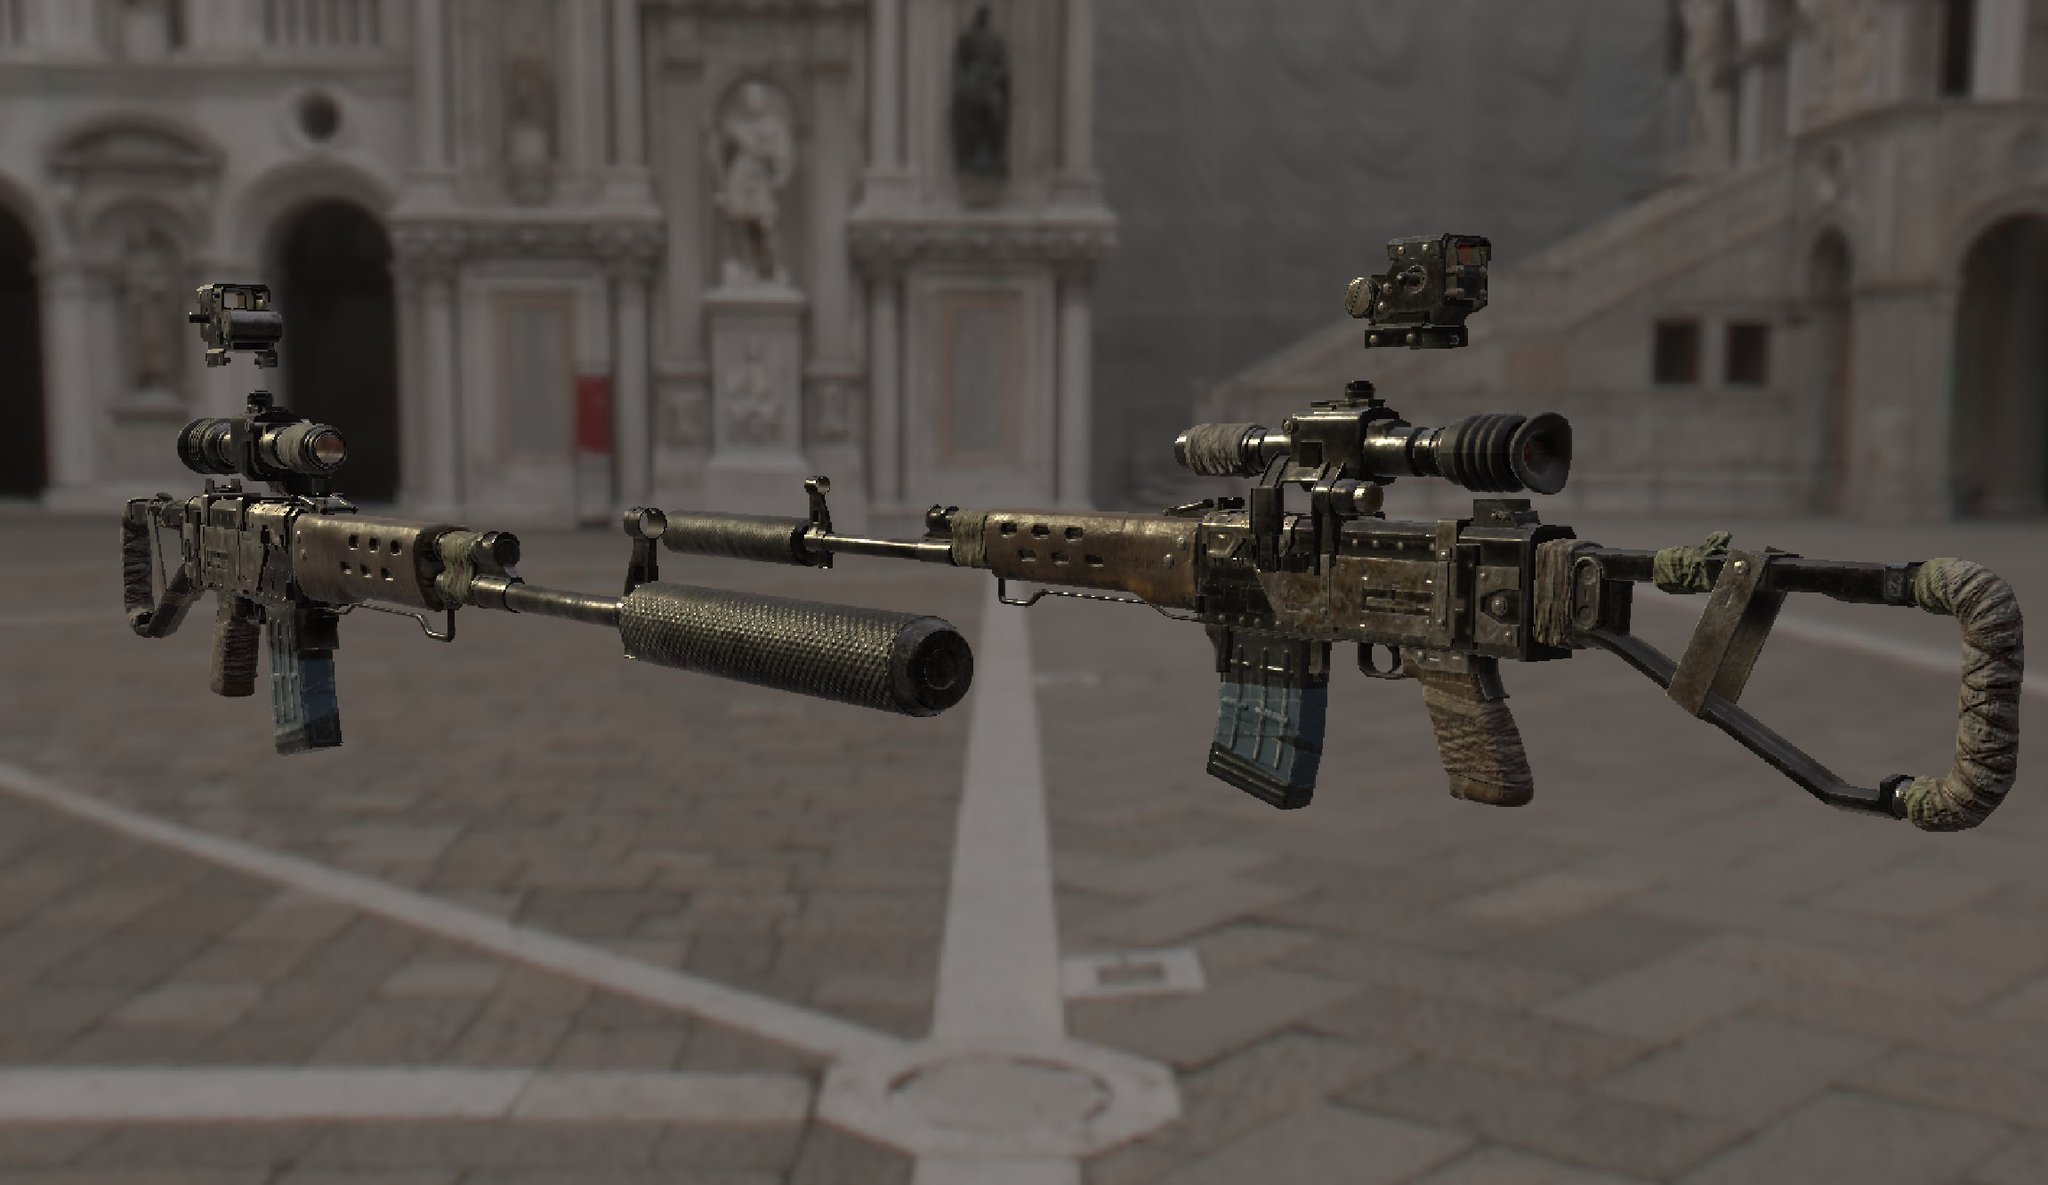 7 Days To Die Official On Twitter Here Is The New Top Tier Sniper Rifle Coming To Alpha 19 7daystodie